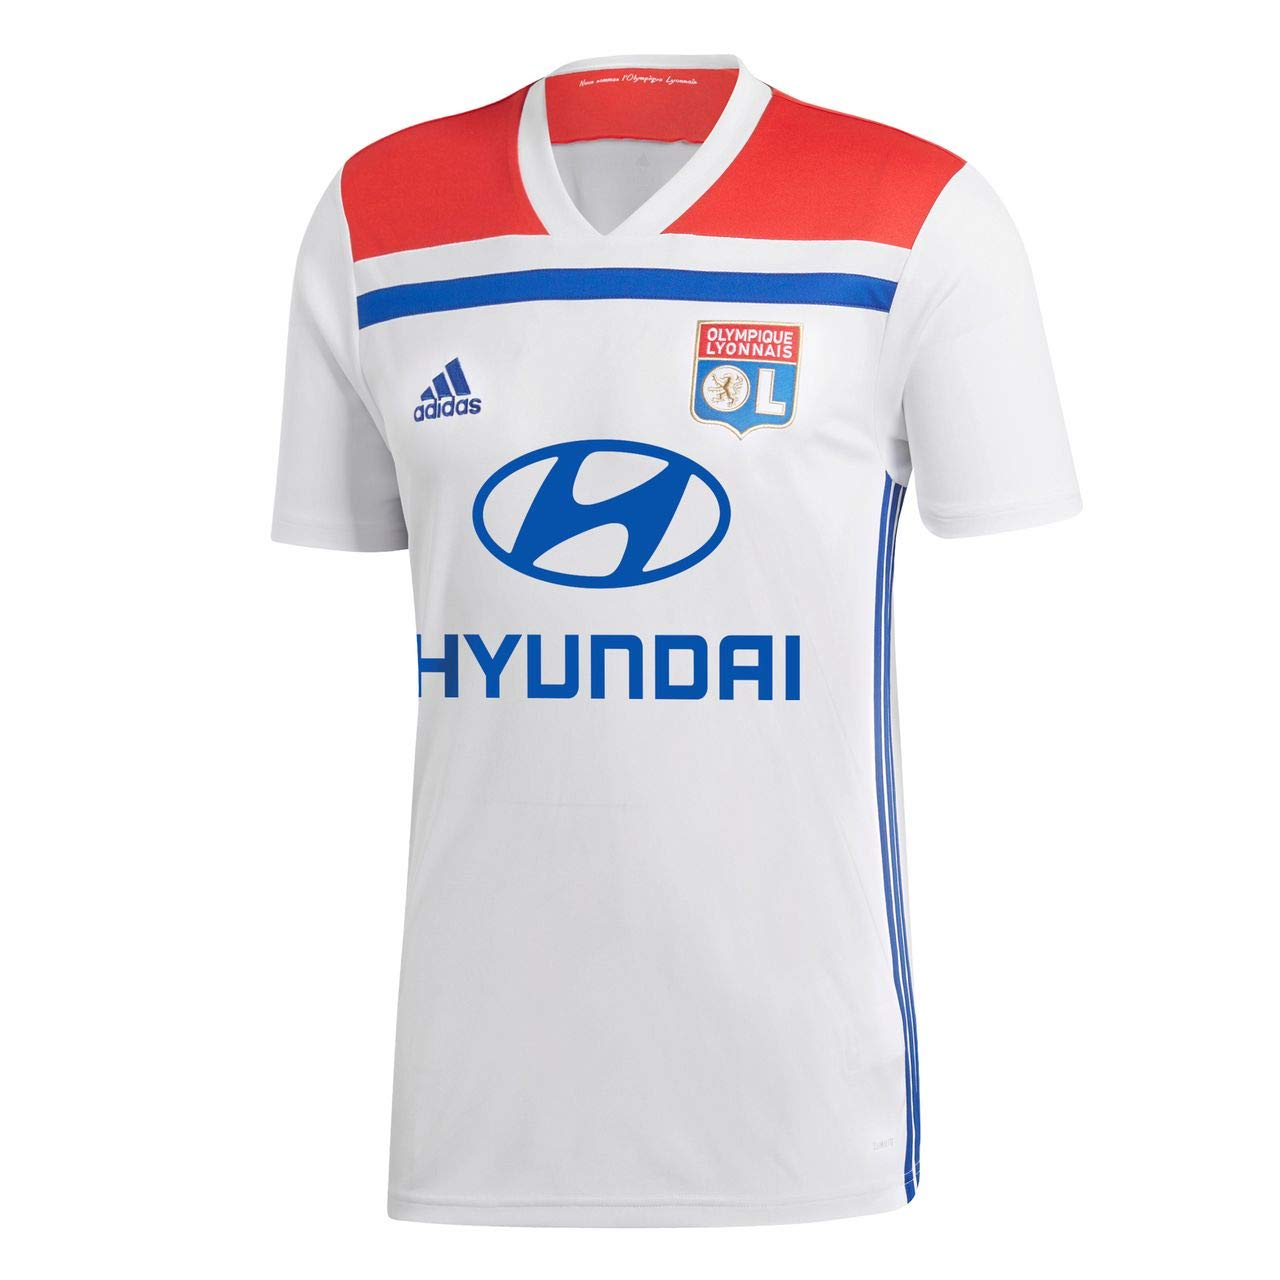 05eece4cf83 Amazon.com : adidas 2018-2019 Olympique Lyon Home Football Soccer T-Shirt  Jersey : Sports & Outdoors